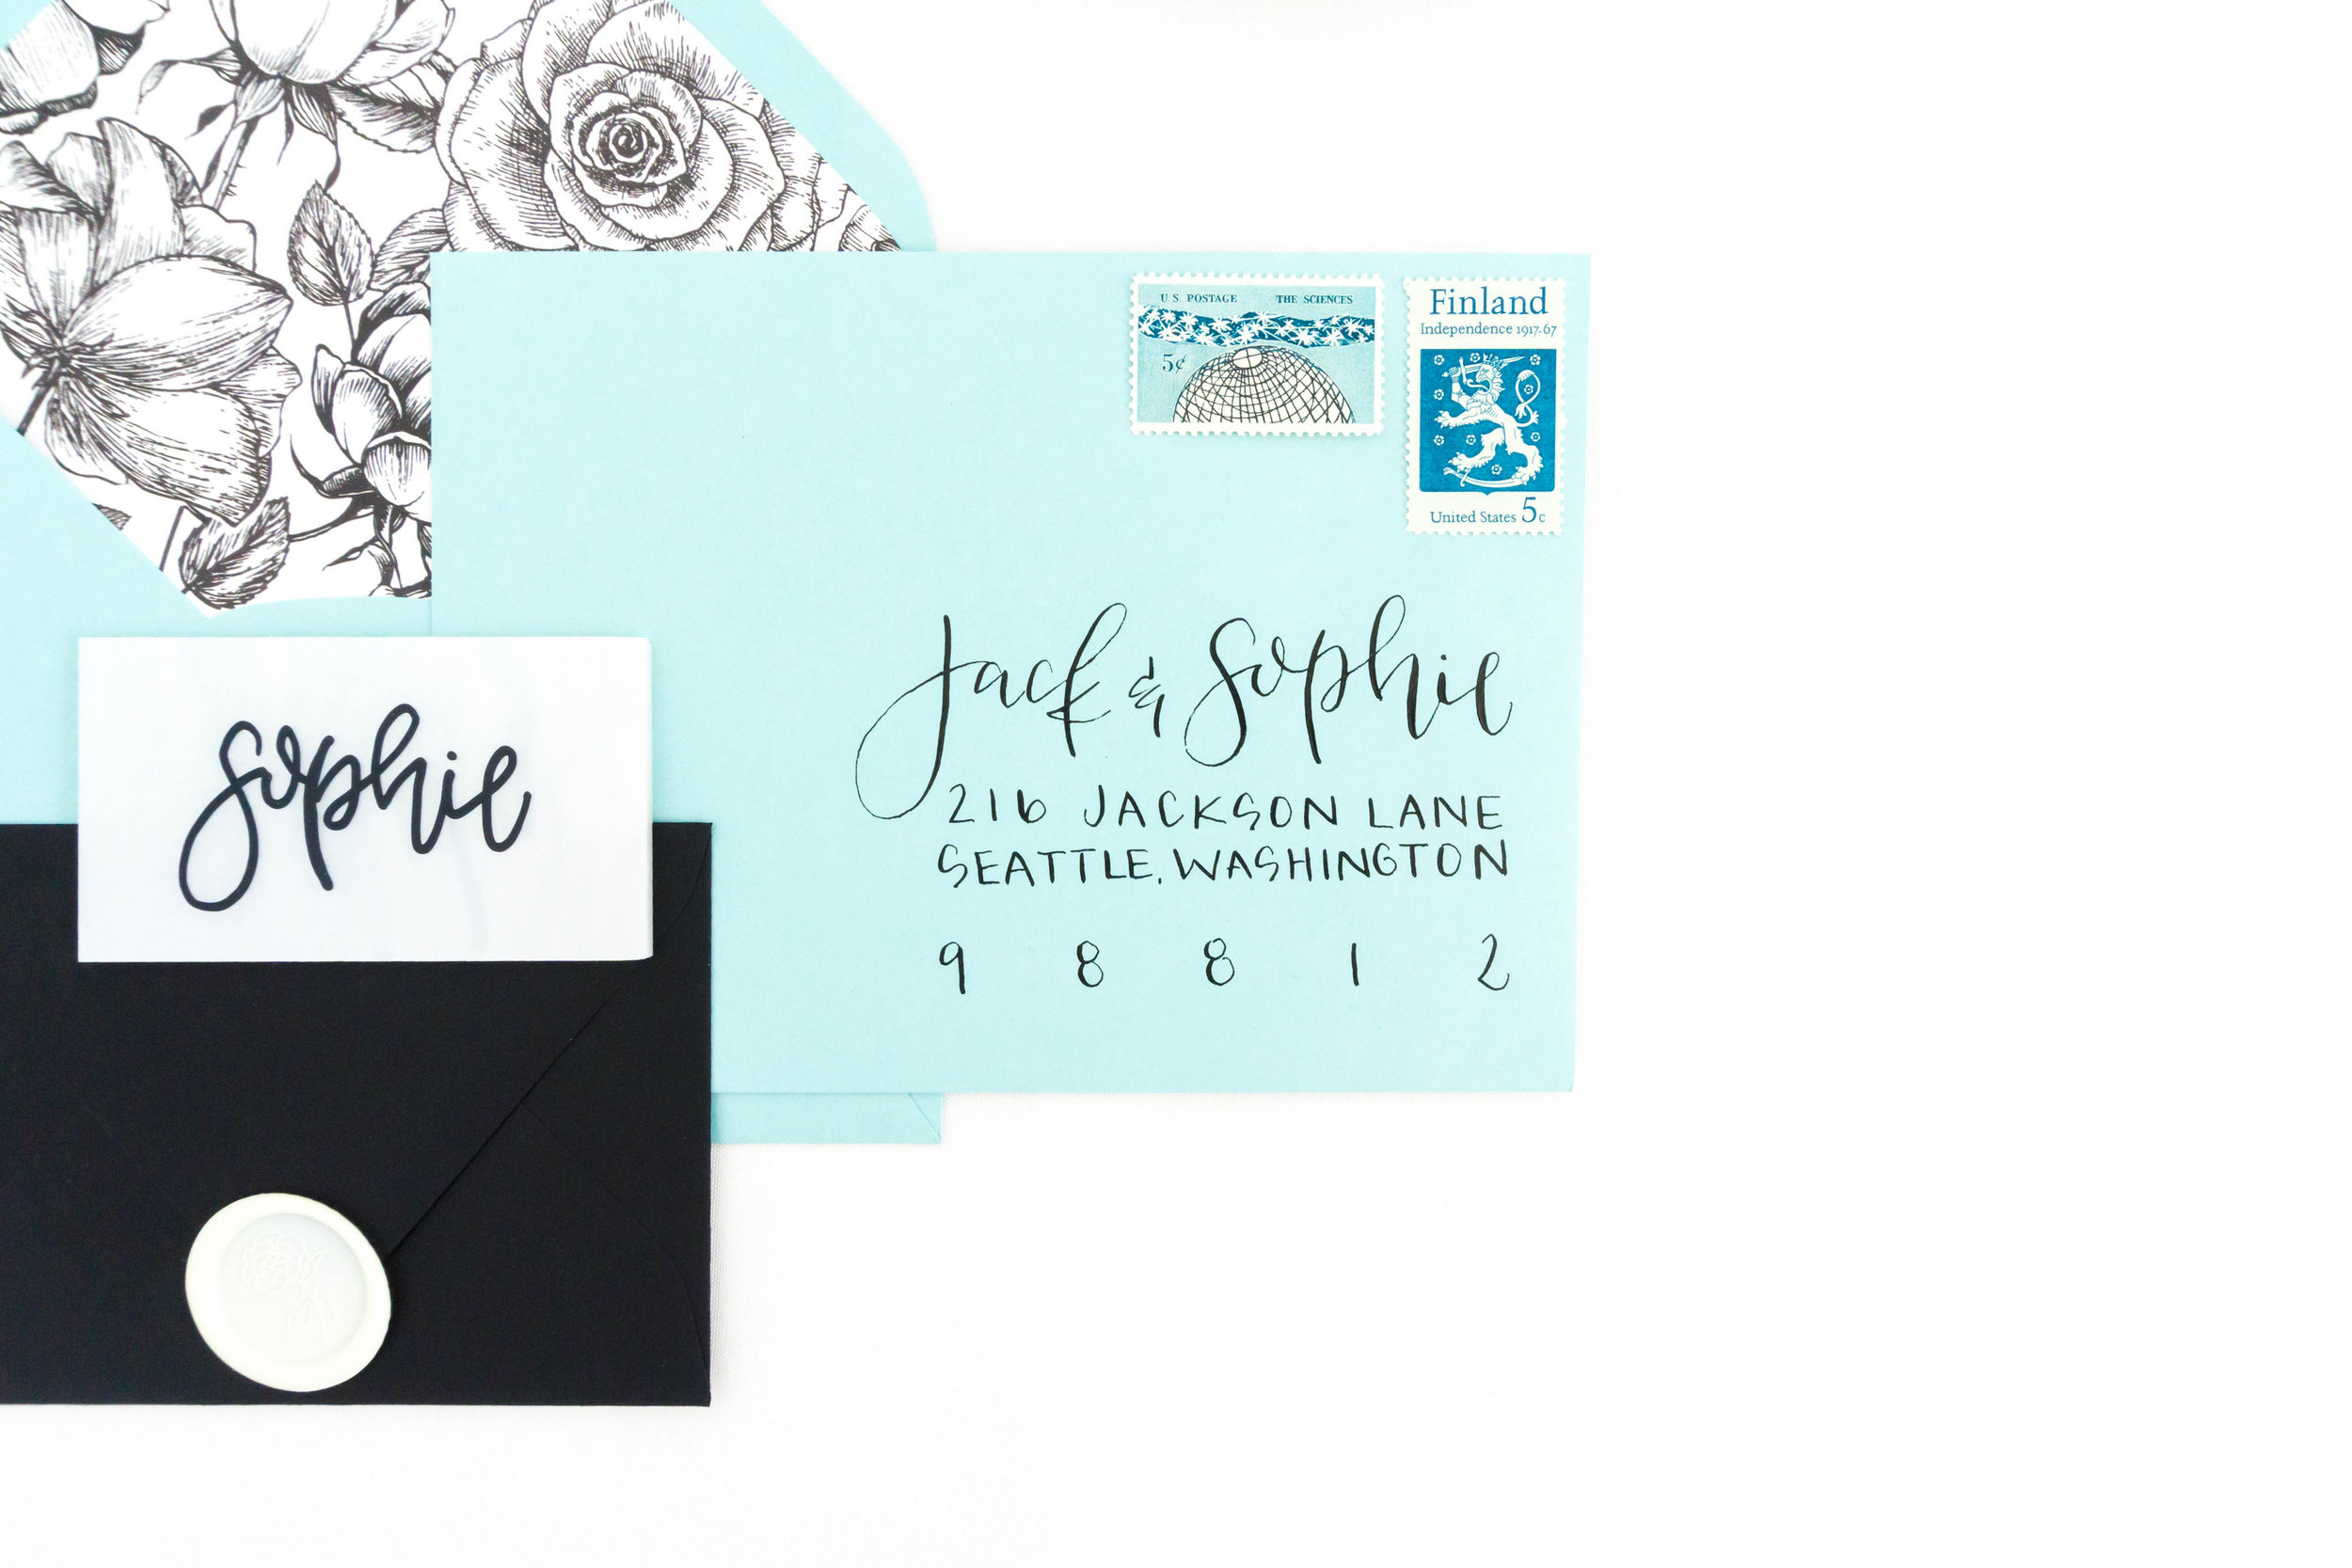 love-fern-design-studio-custom-wedding-invitations-for-the-modern-couple-modern-calligraphy-in-seattle-washington-custom-wedding-stationery-teal-envelopes-with-floral-liner-and-wax-seal